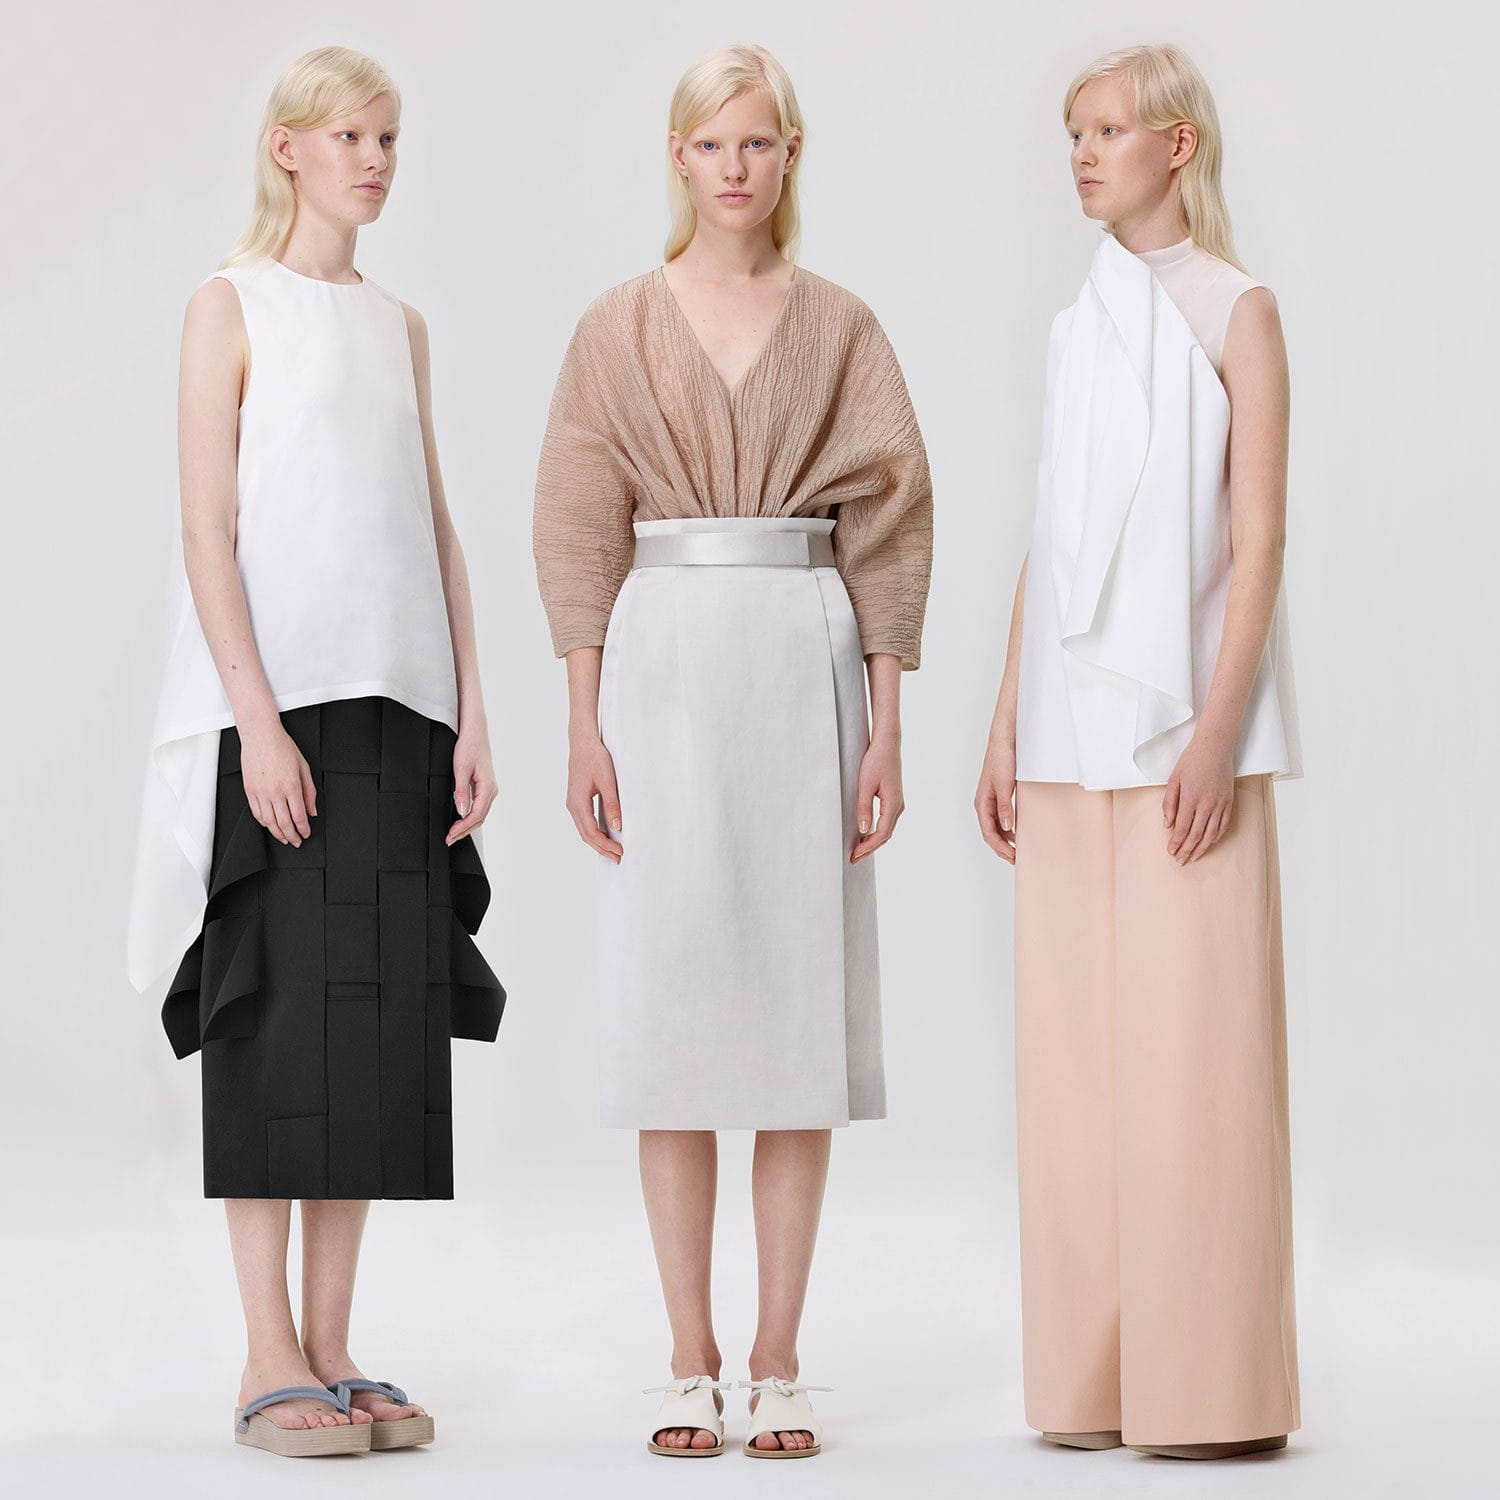 Nordic chic: 8 Scandi brands you need to know